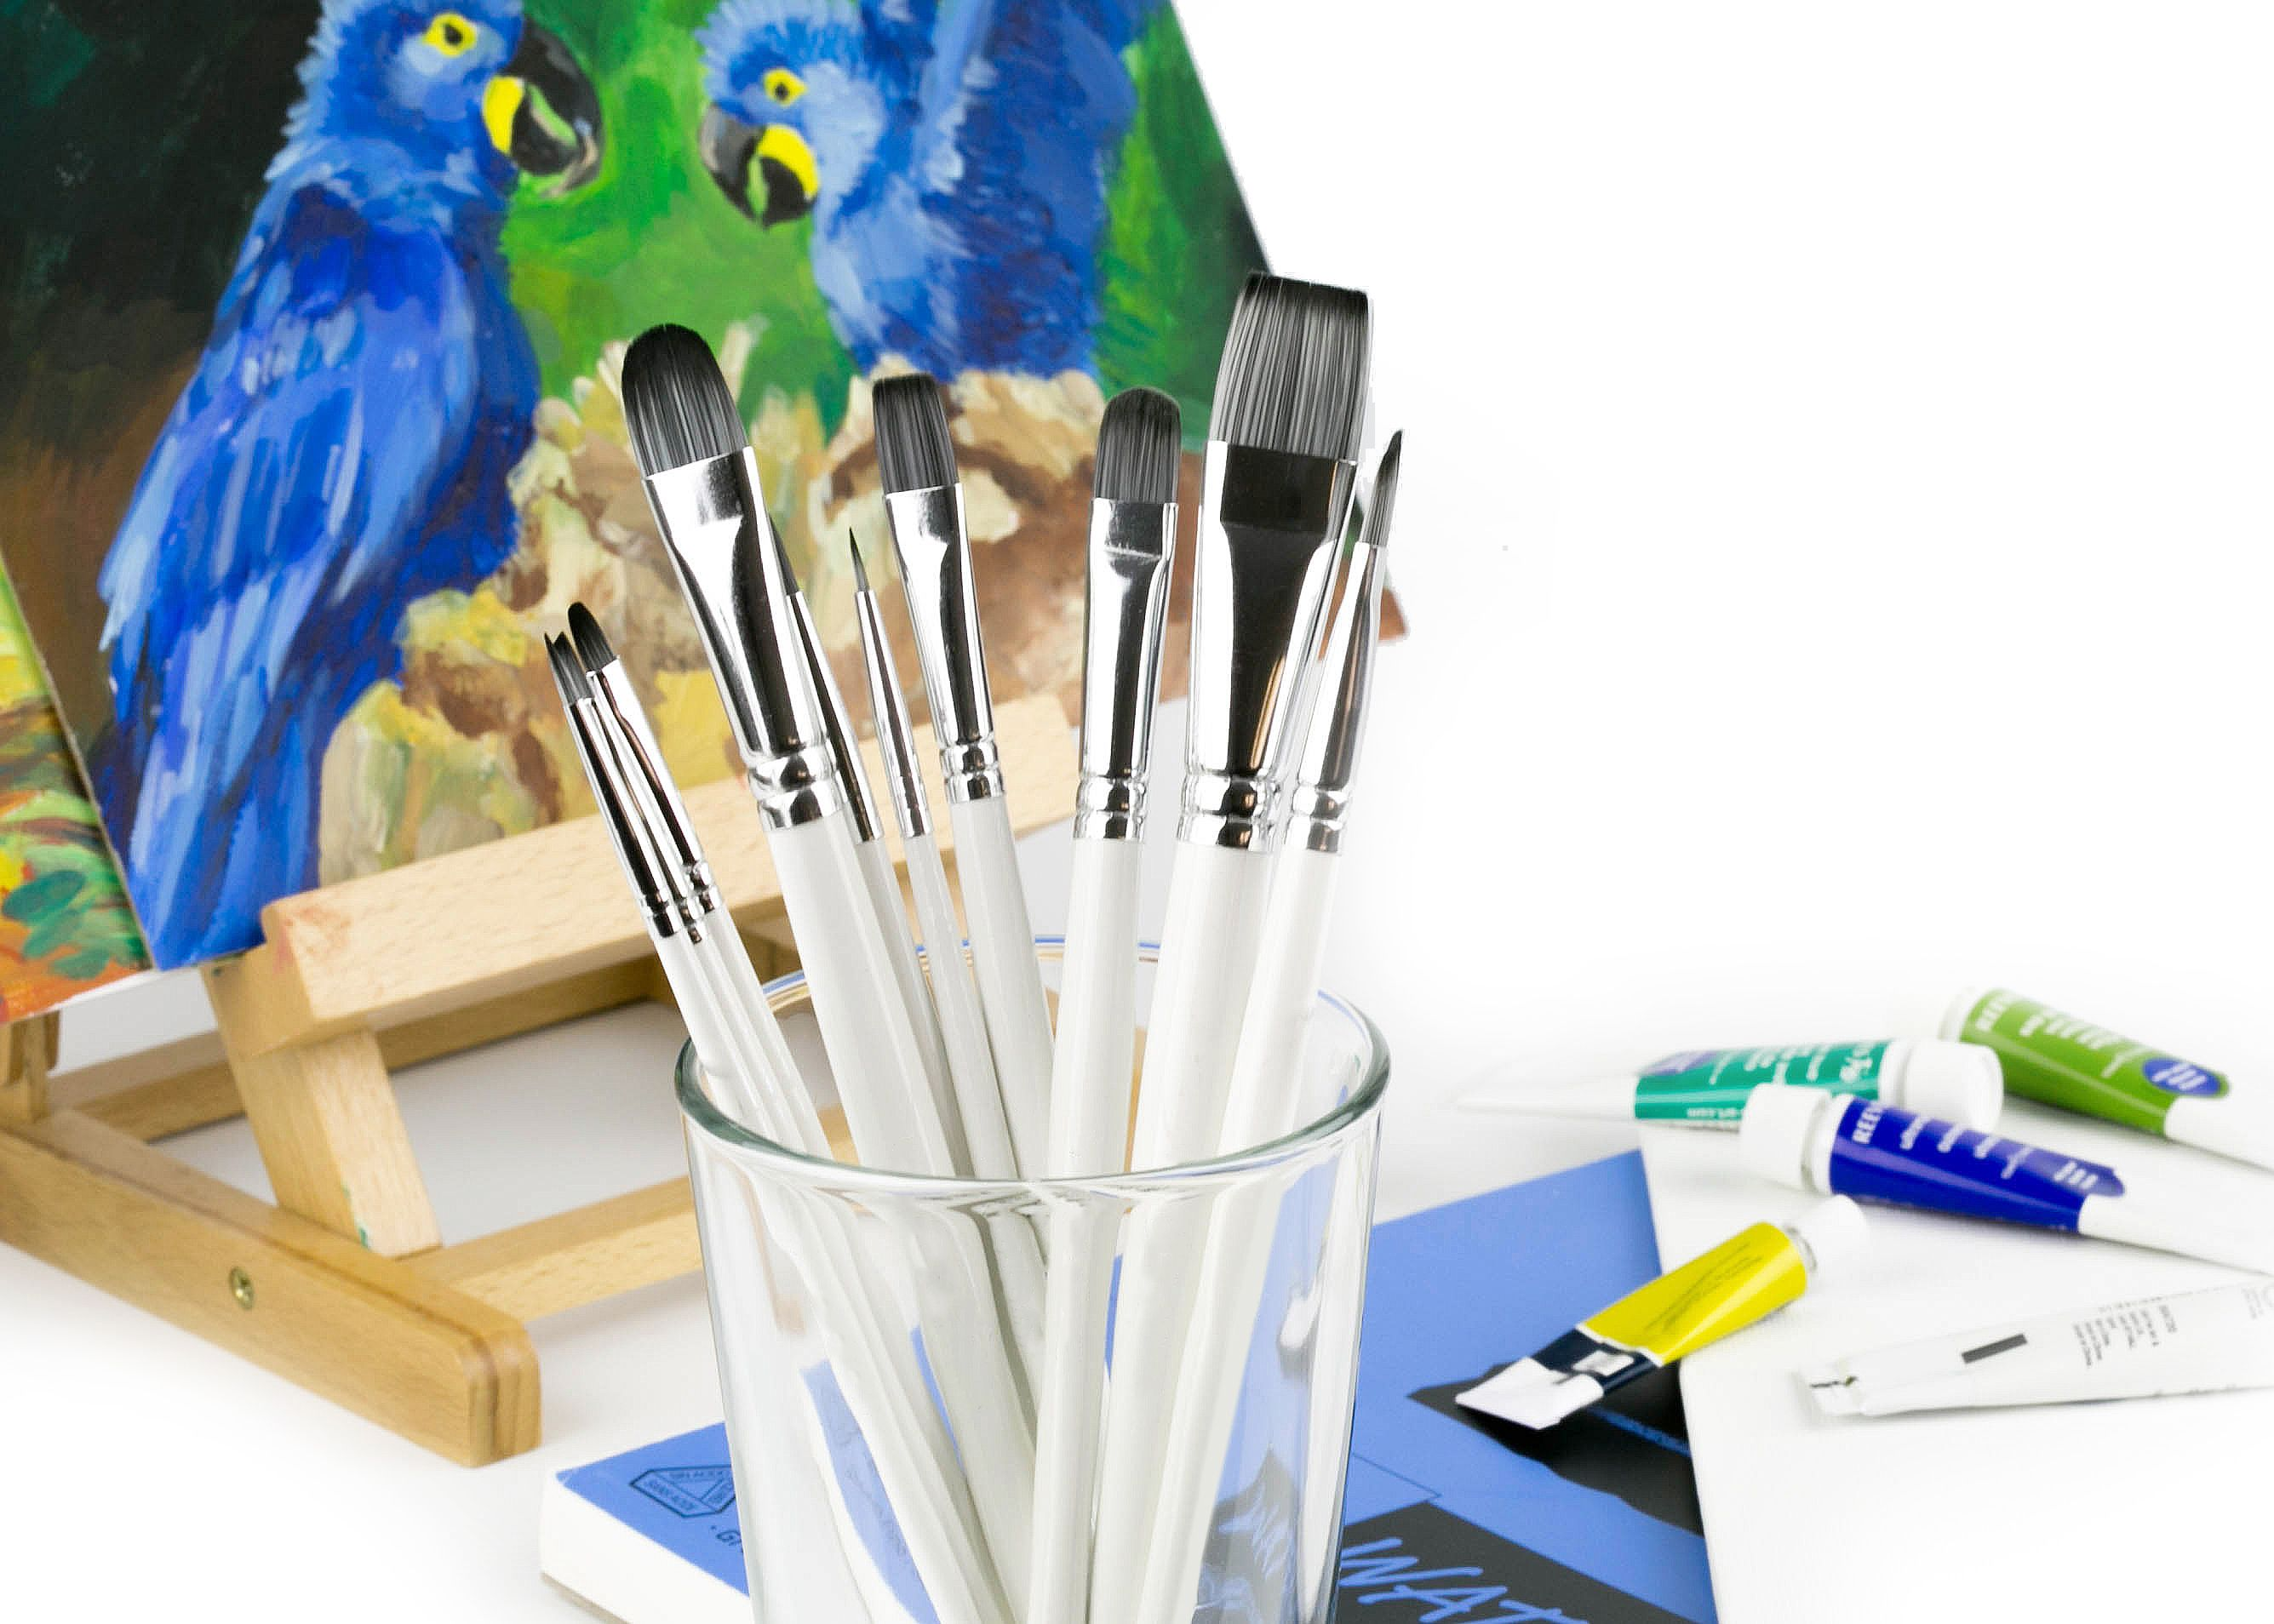 As soon as you hold any of our brushes you will see why